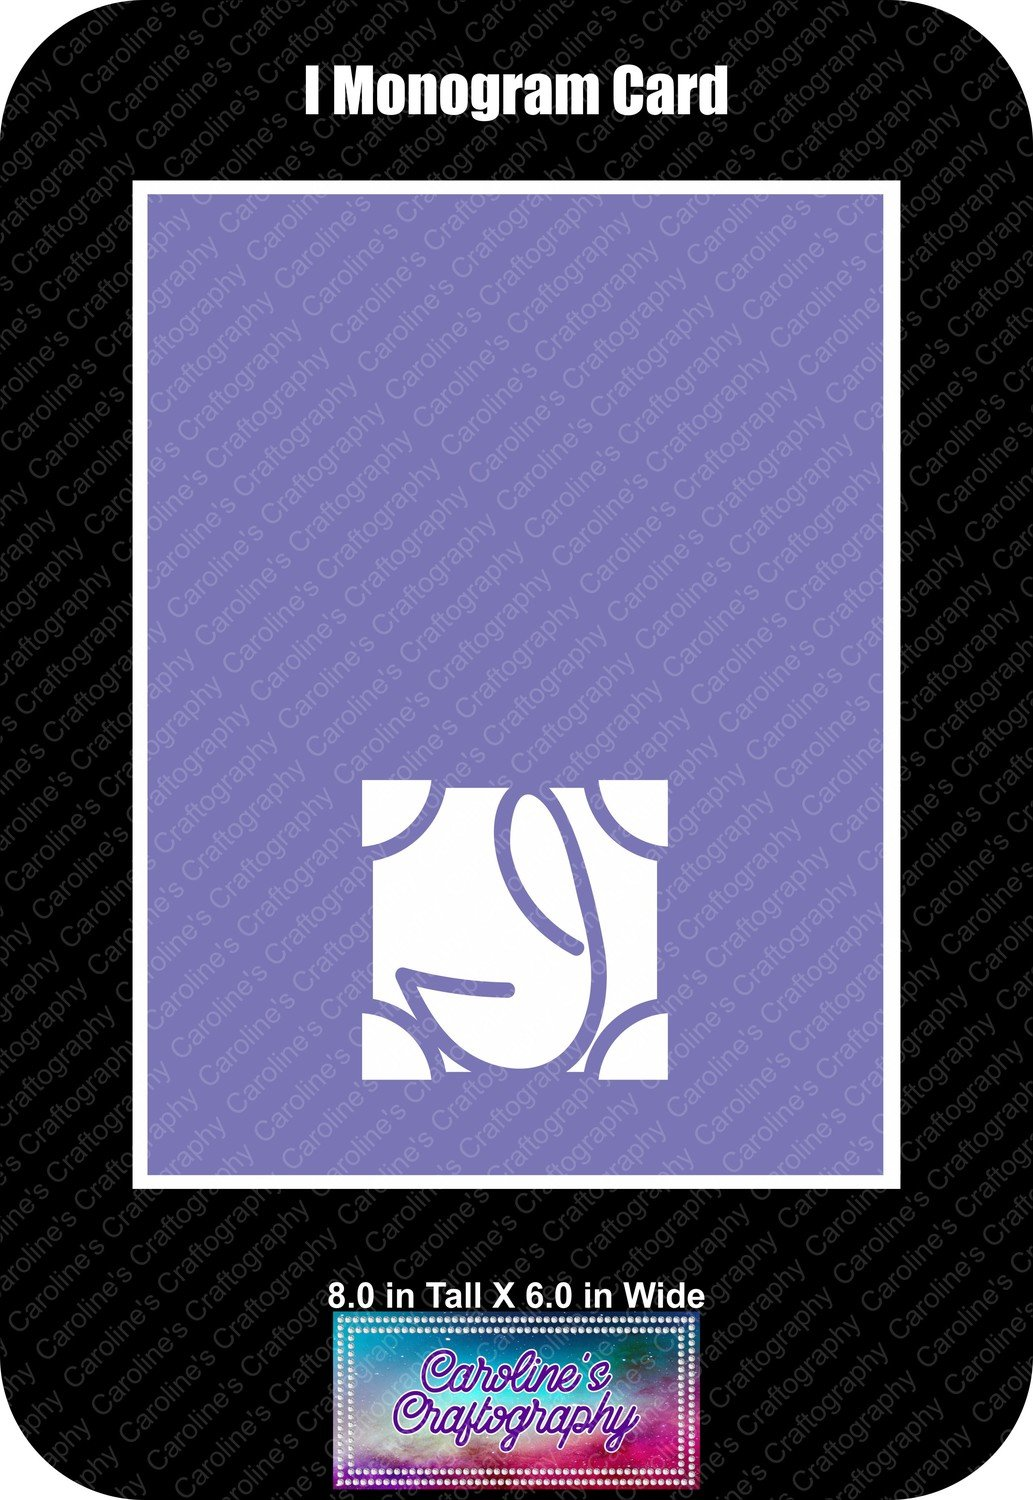 I Monogram Card Base